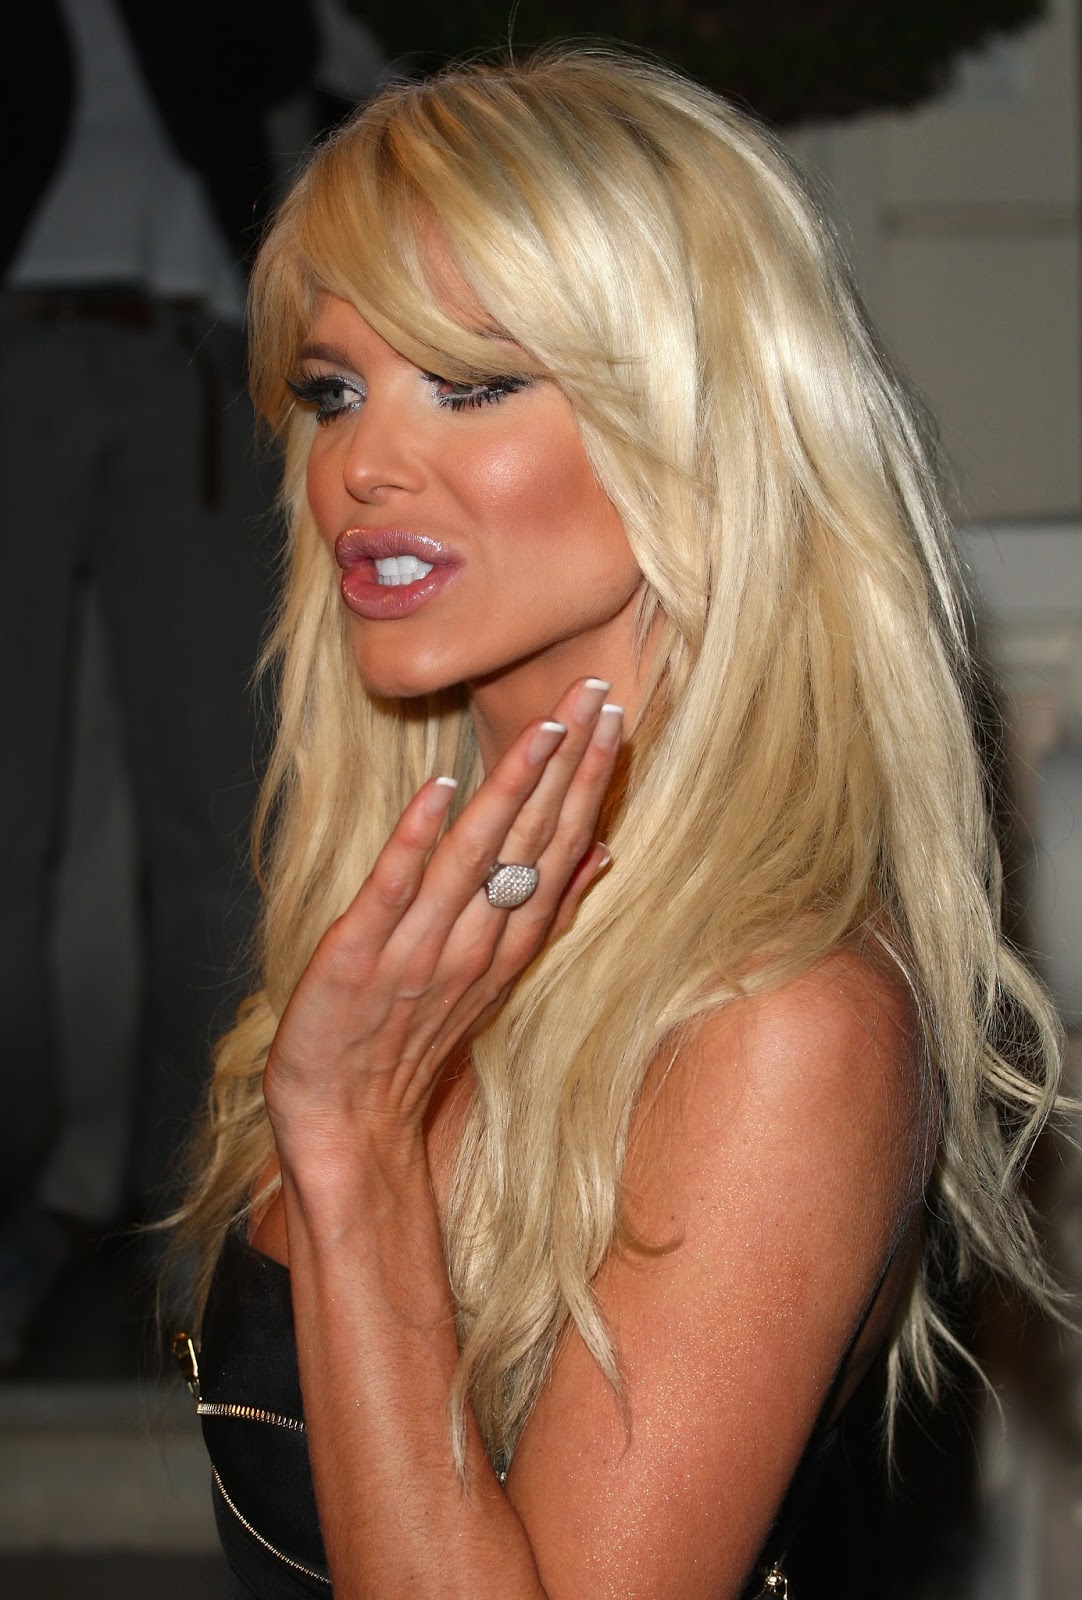 Talk this Victoria silvstedt nu from